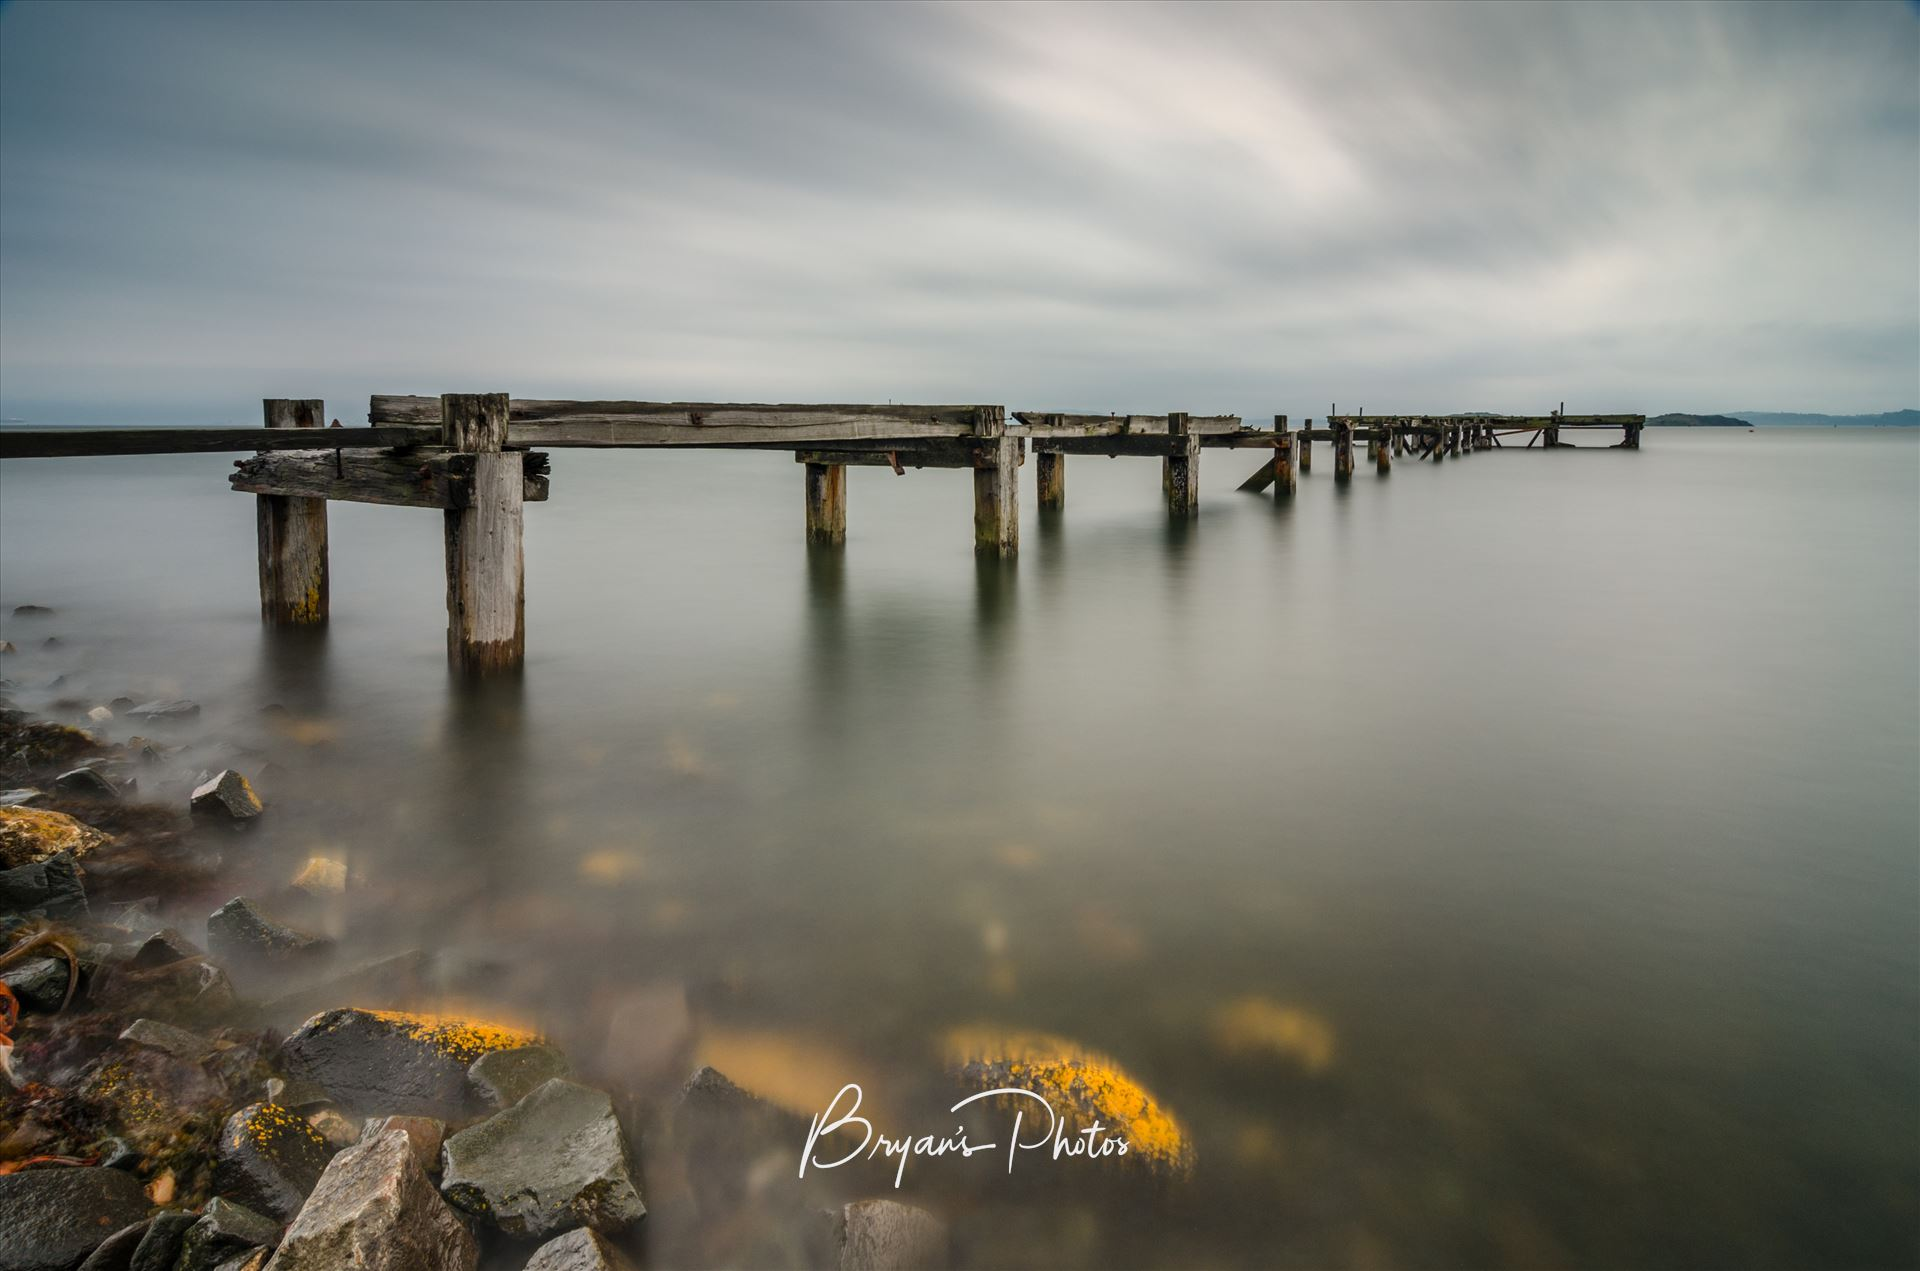 Pier at Aberdour Landscape A daytime long exposure of a disused pier at Aberdour on the banks of the river Forth on the Fife coast Scotland by Bryans Photos